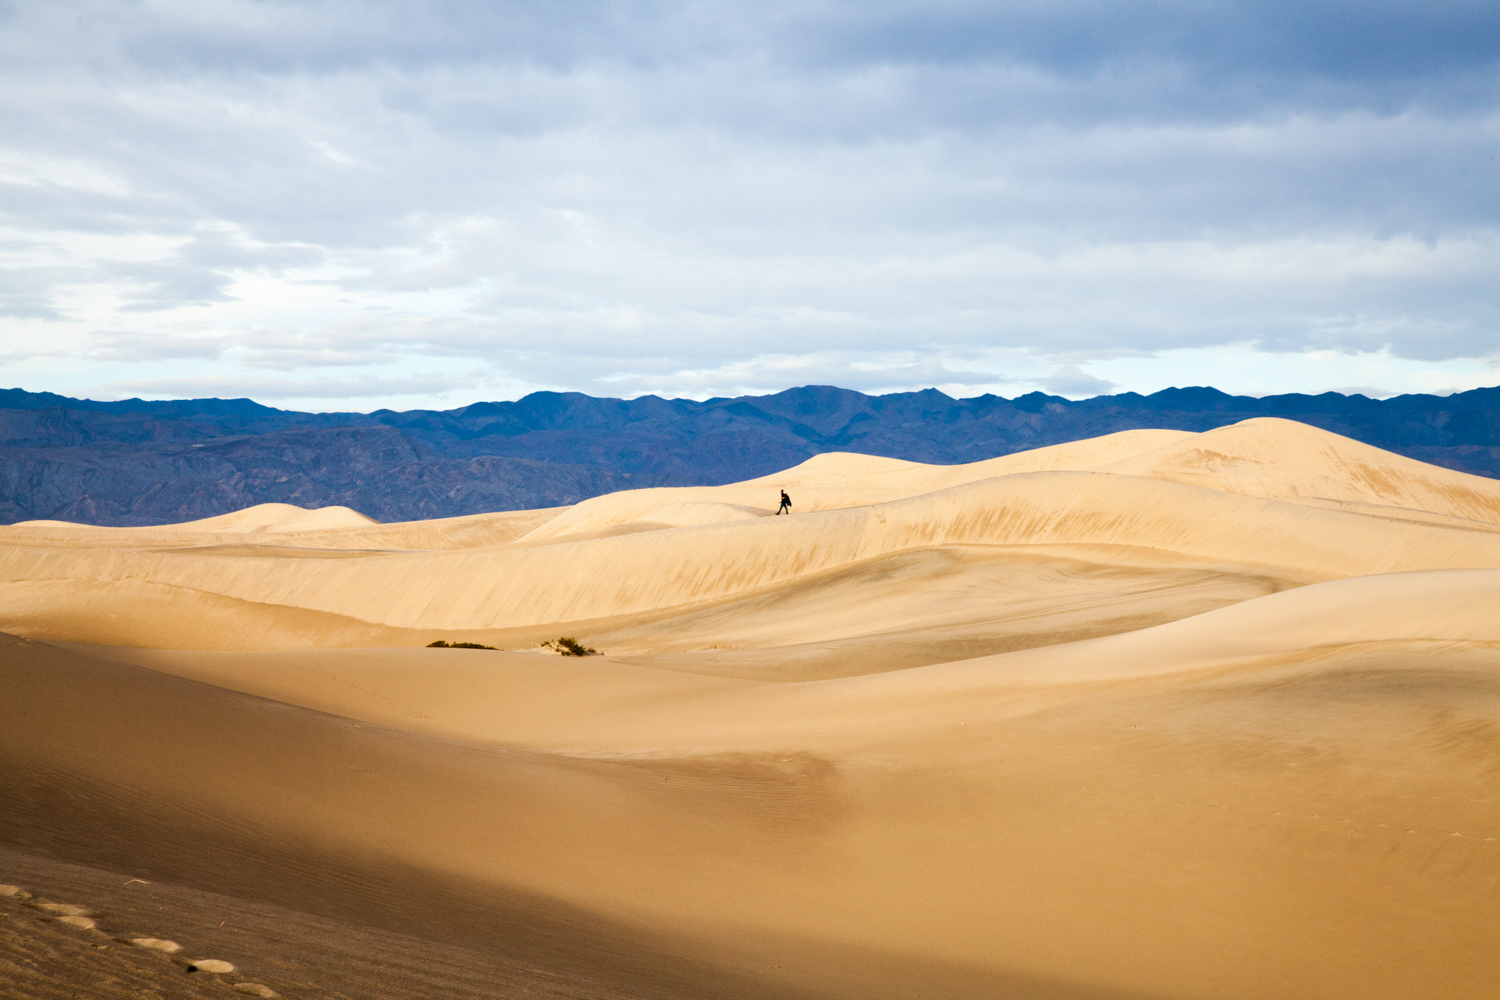 Helynn_Ospina_Travel_Death_Valley_California_01605-5.jpg